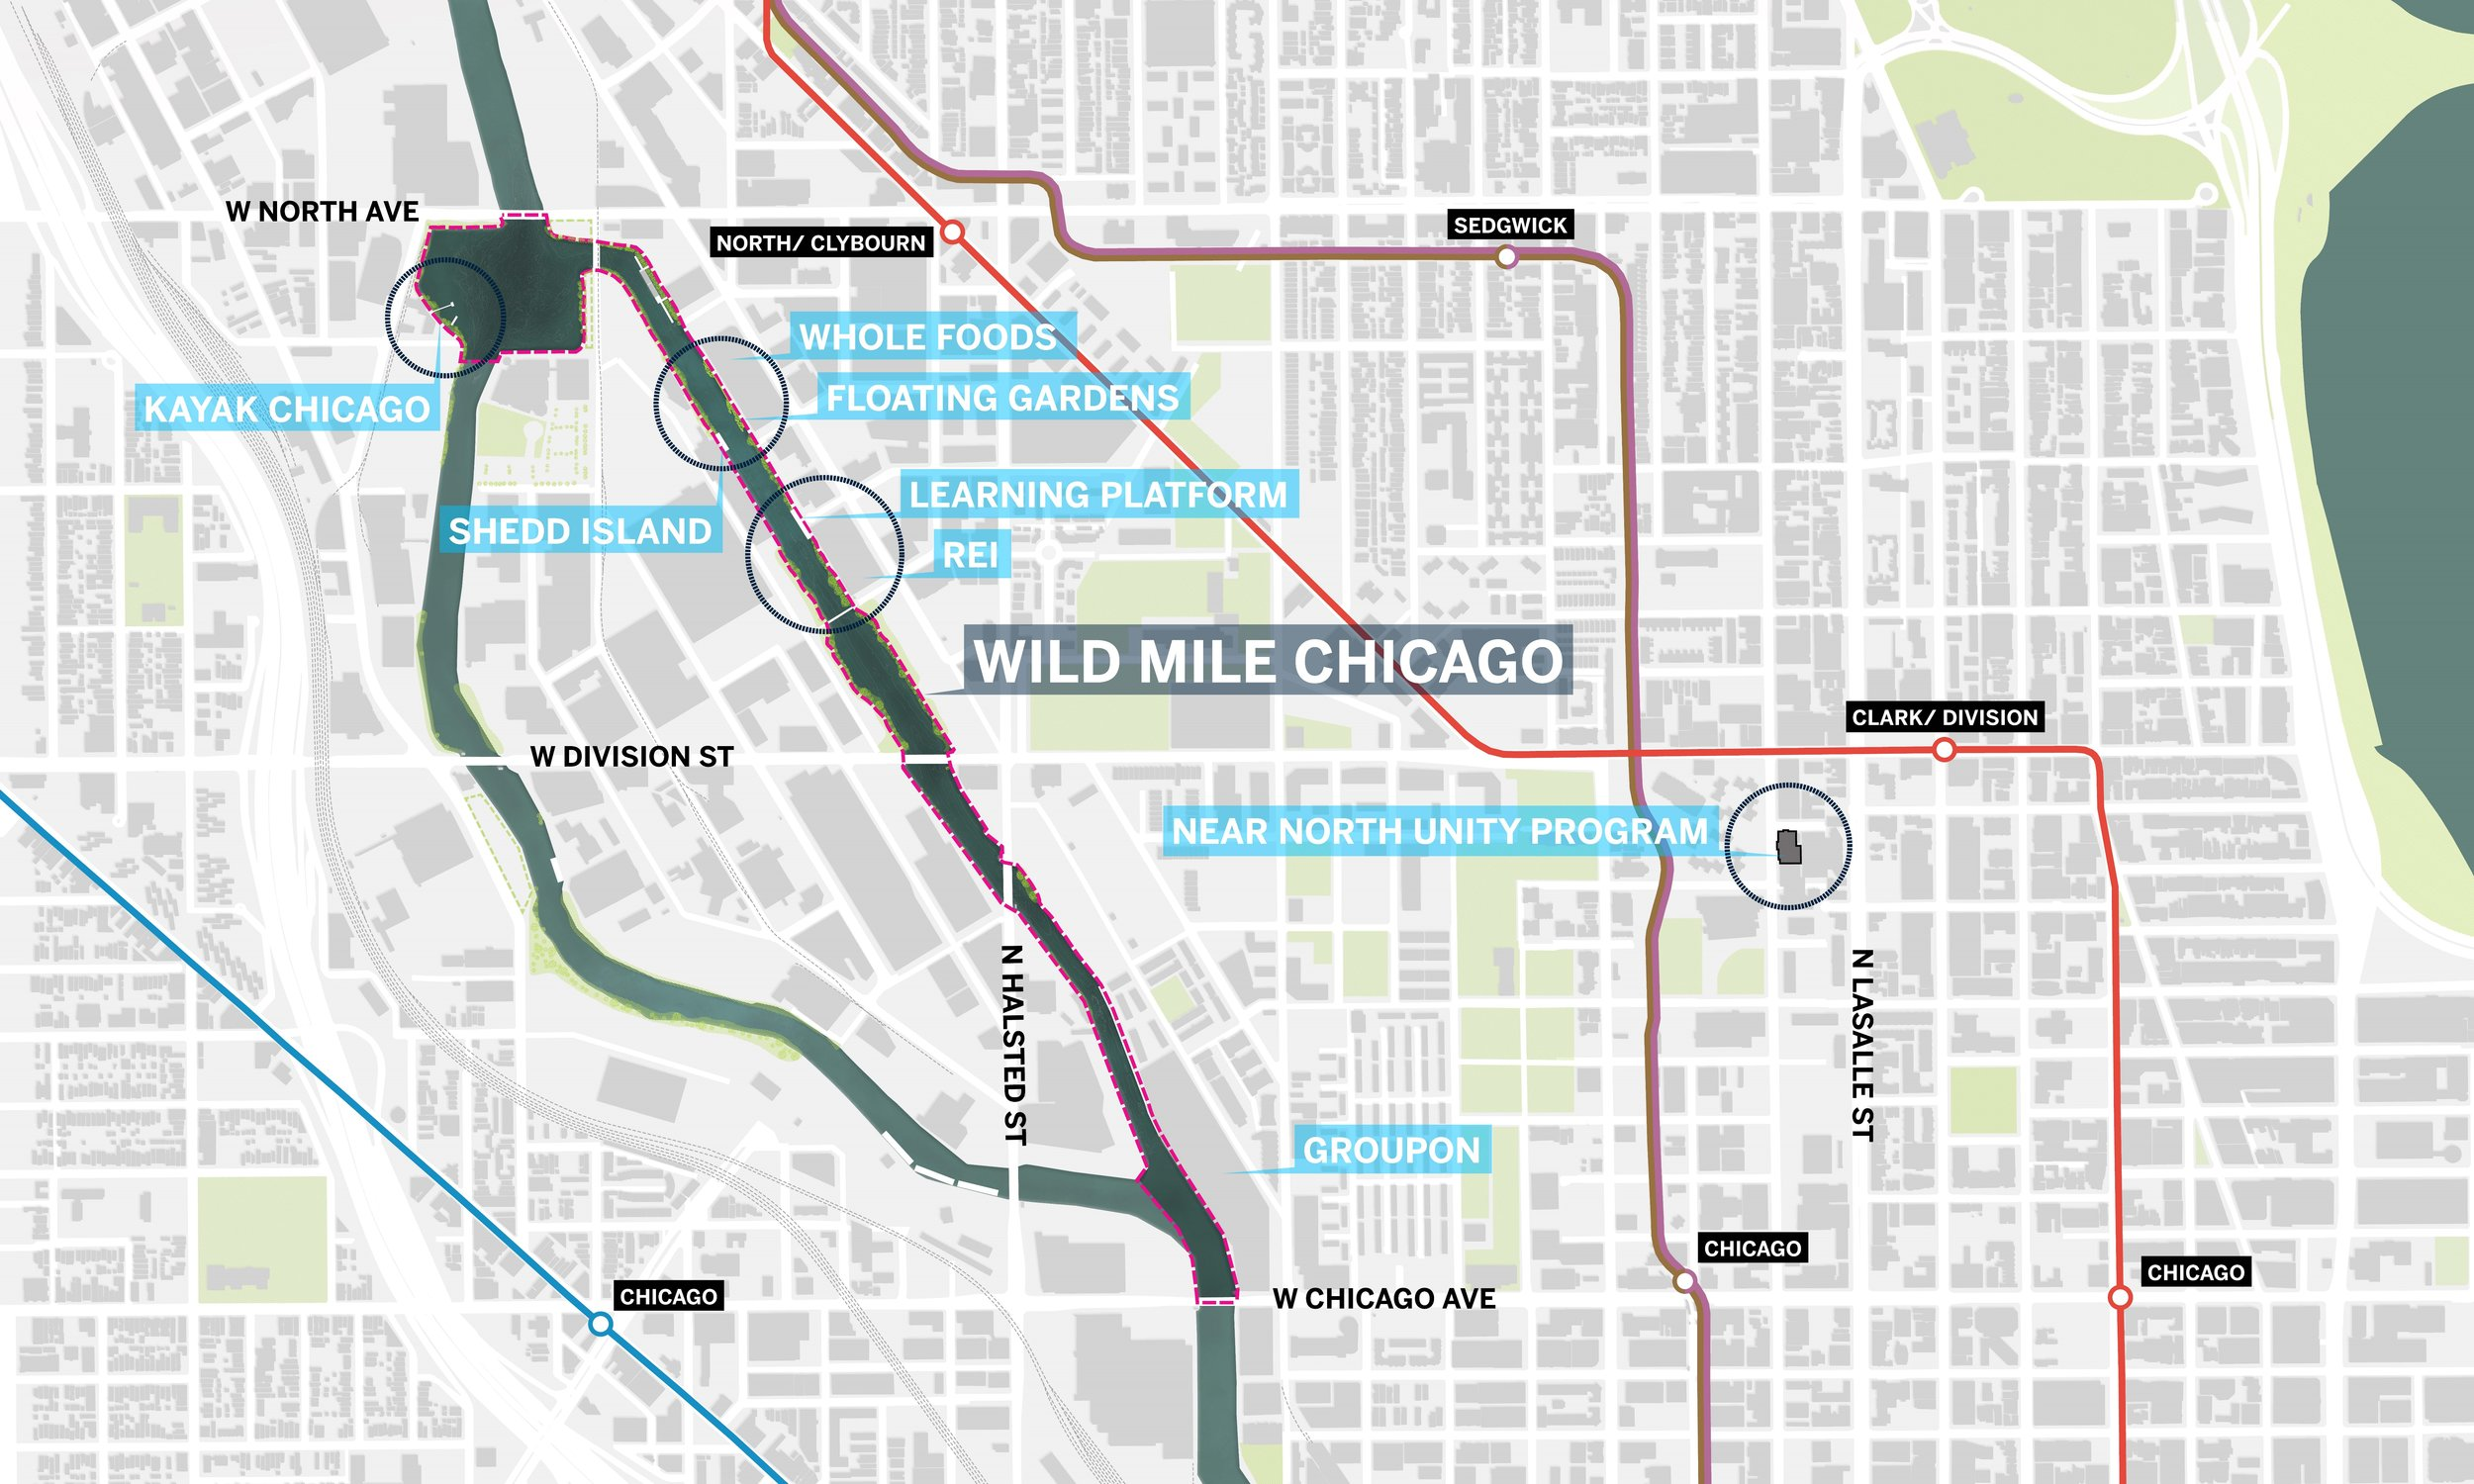 Wild Mile Chicago Basemap with Labels_Update 3.jpg